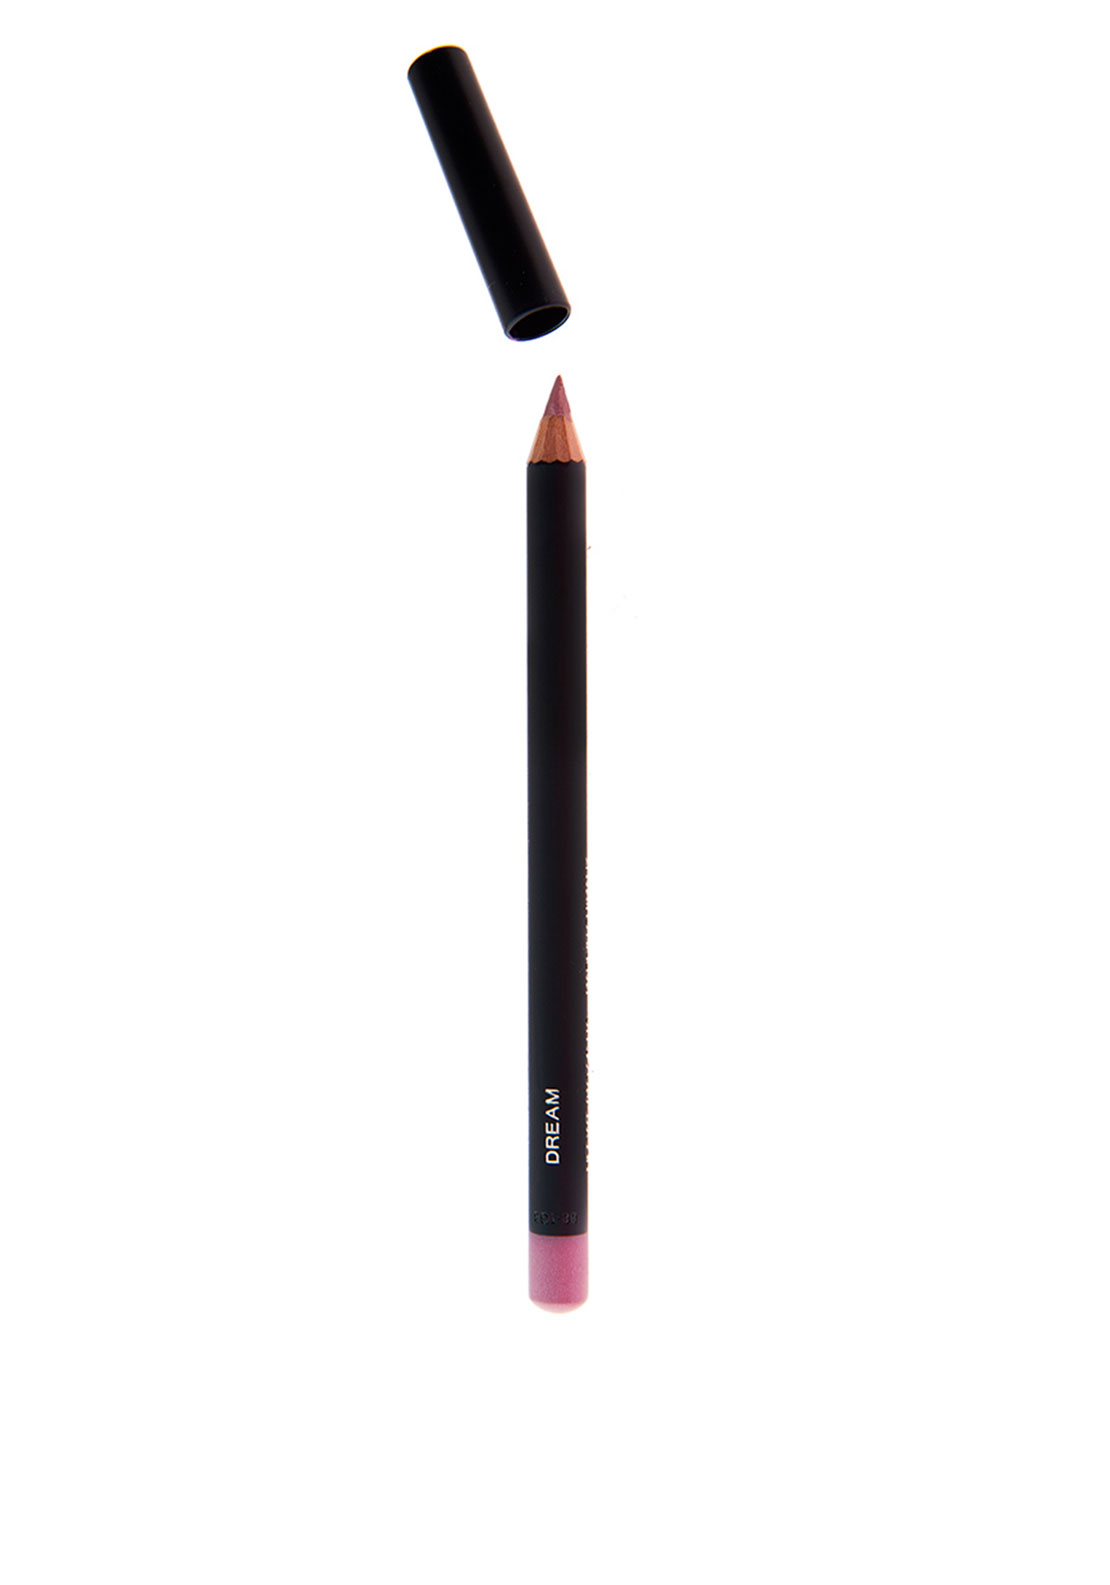 Susan McCann String of Diamonds by Lynda Strain Lip Pencil, Dream